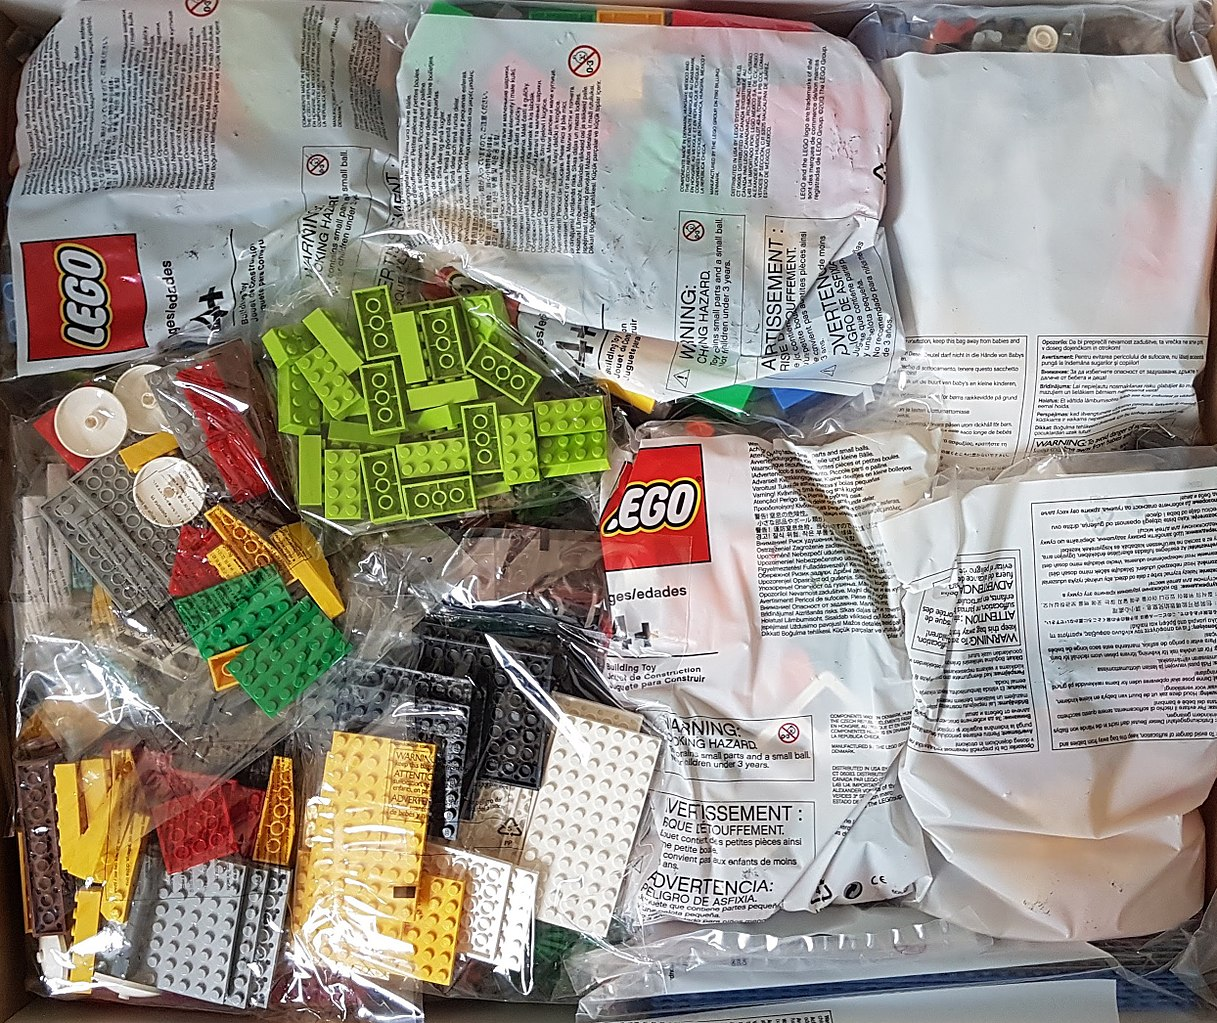 Foto von LEGO Serious Play Originalverpackung (Bildquelle: Koepernick [CC BY-SA 4.0 (https://creativecommons.org/licenses/by-sa/4.0)])